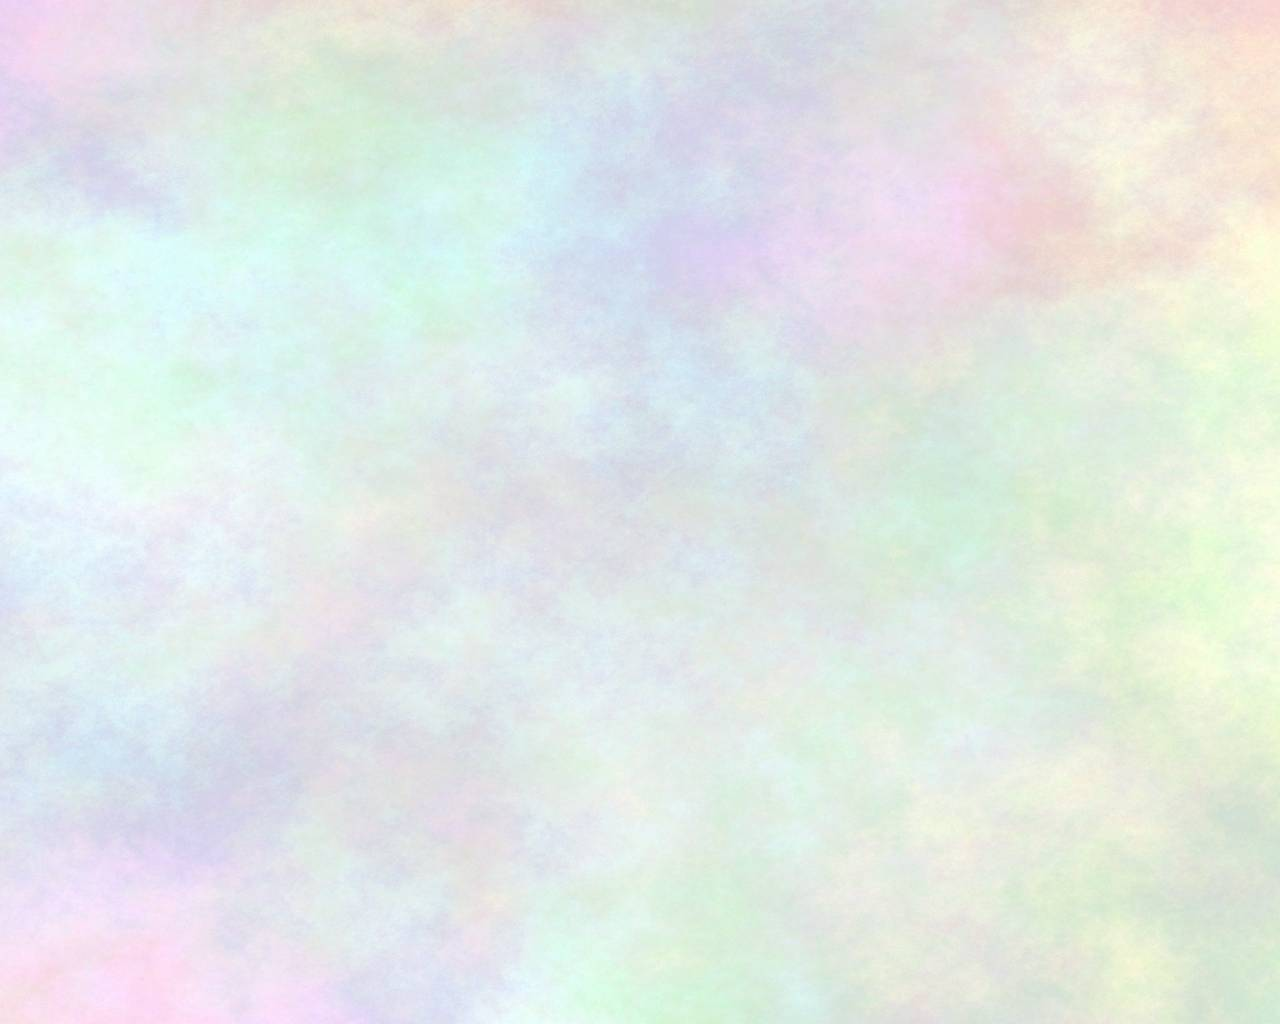 Pastel backgrounds wallpaper cave - Pastel background hd ...